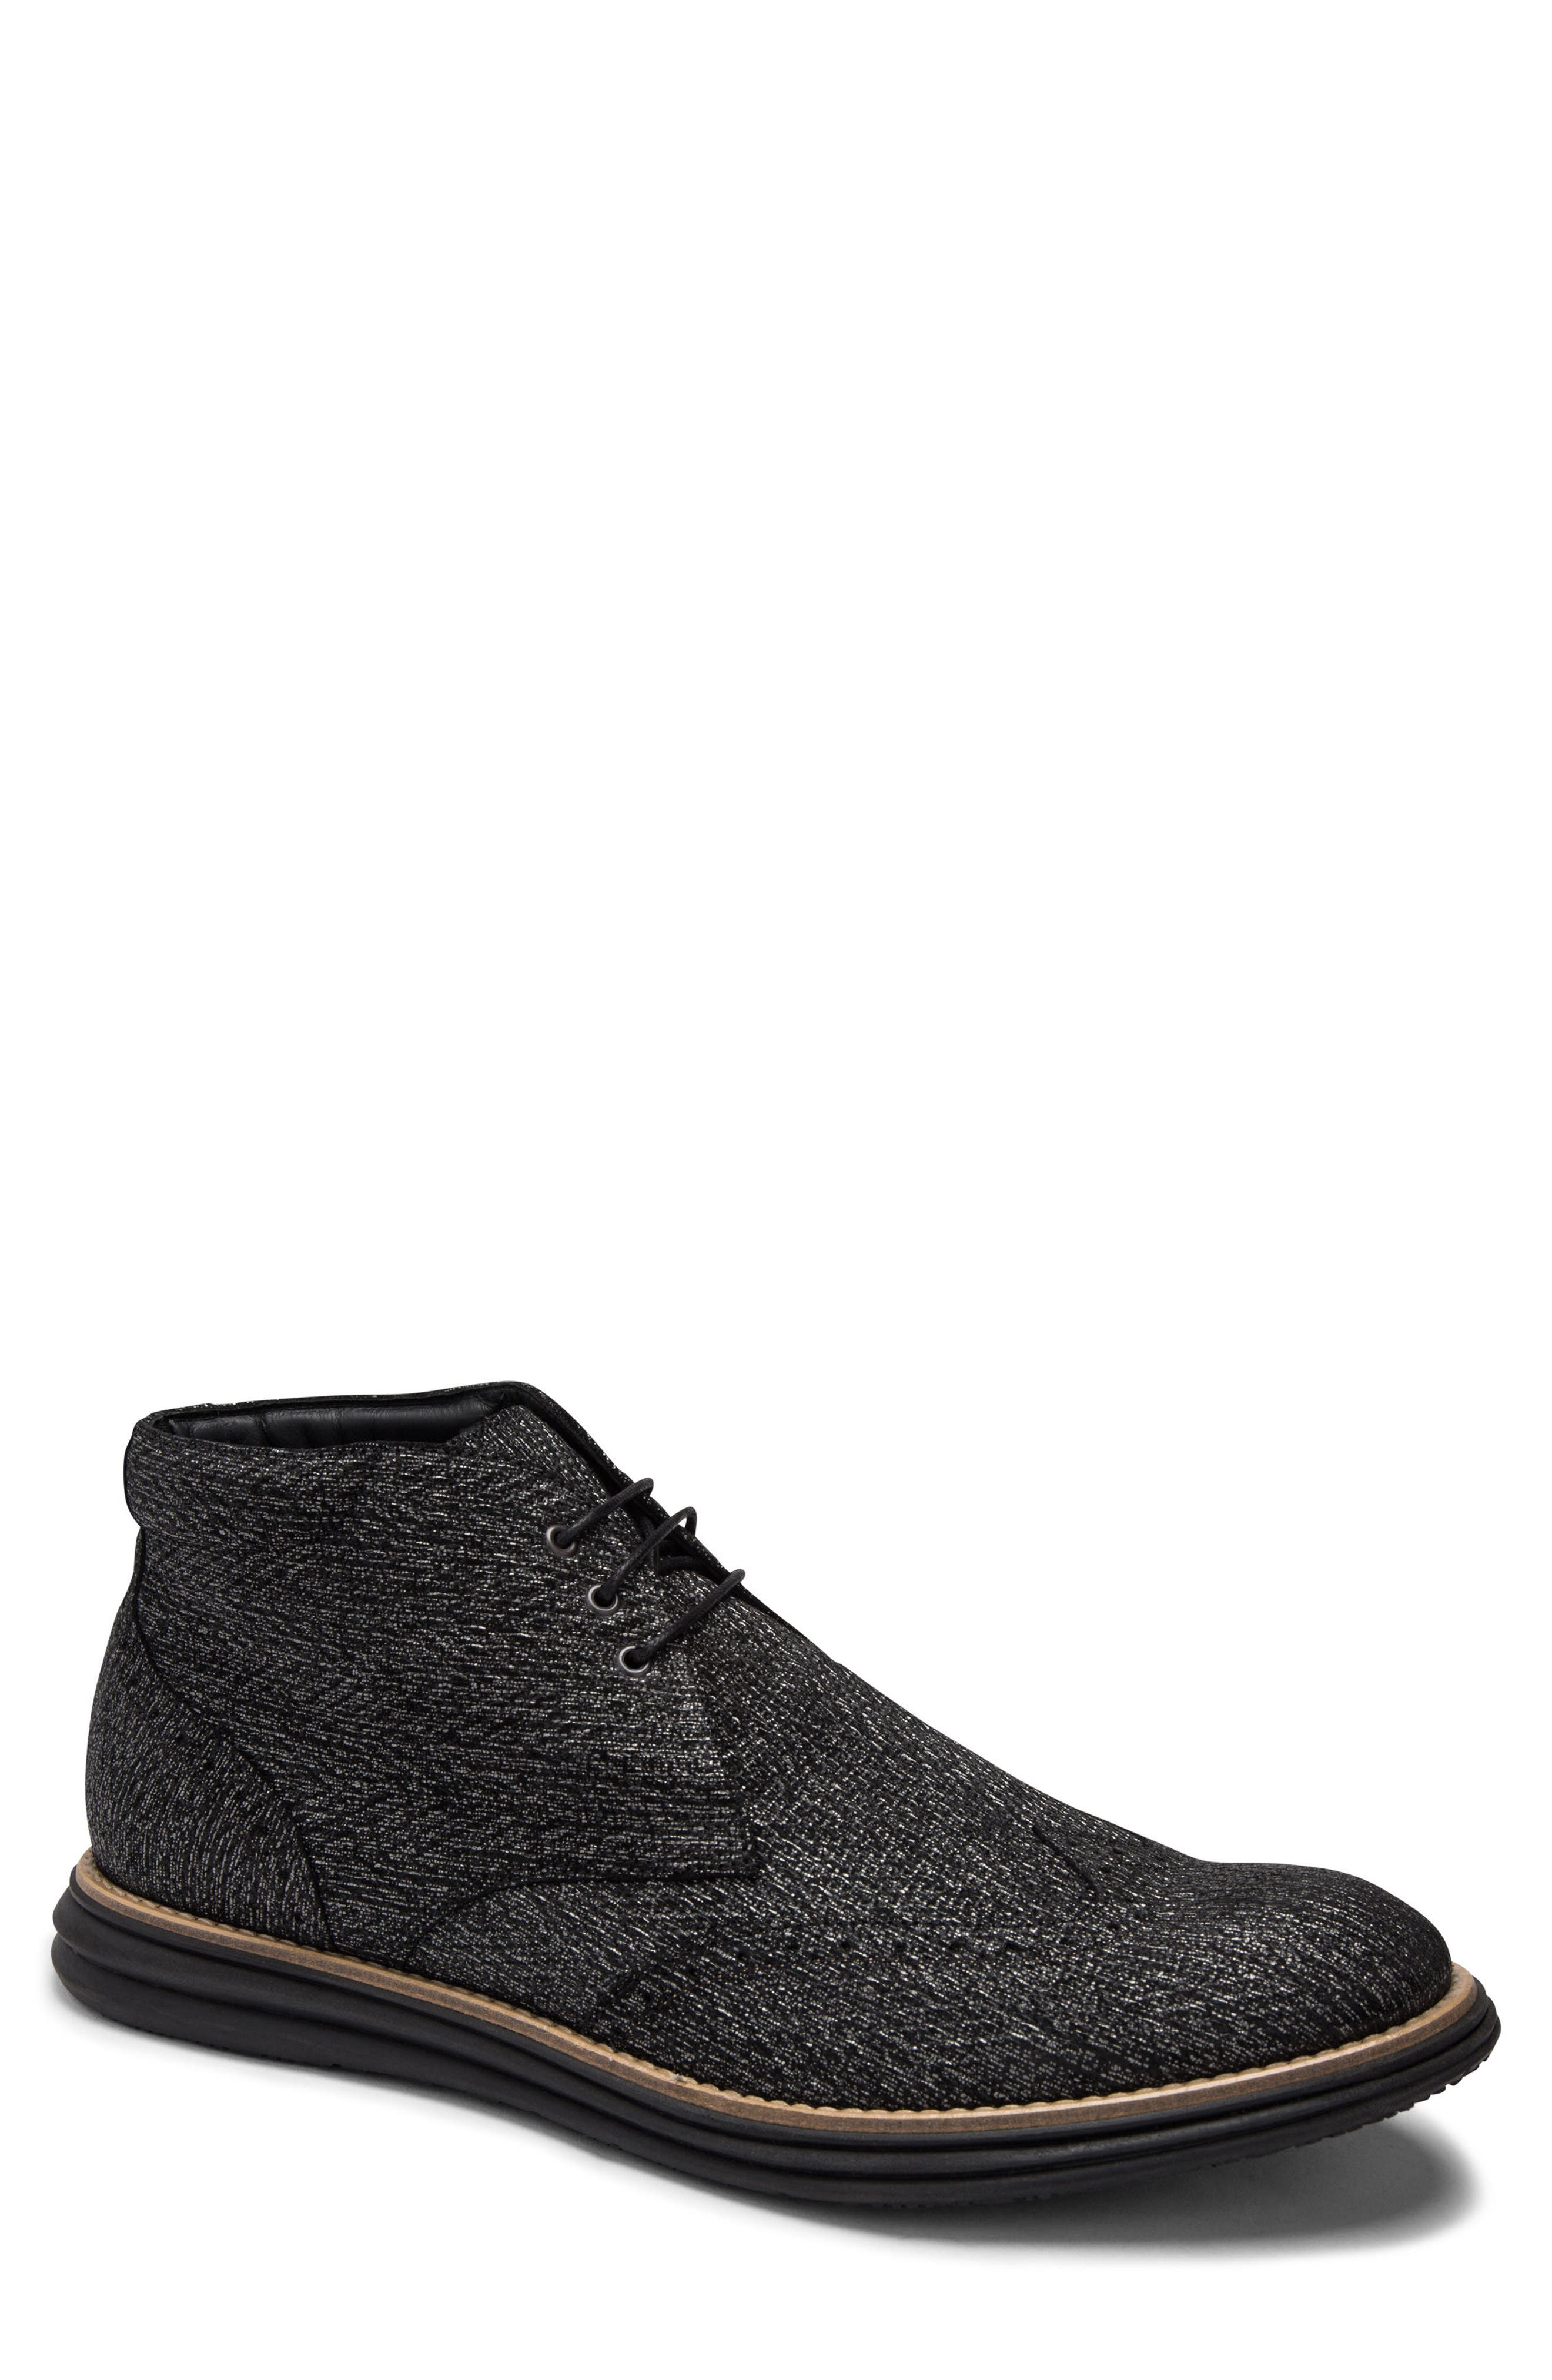 Textured Wingtip Chukka Boot,                             Main thumbnail 1, color,                             NERO